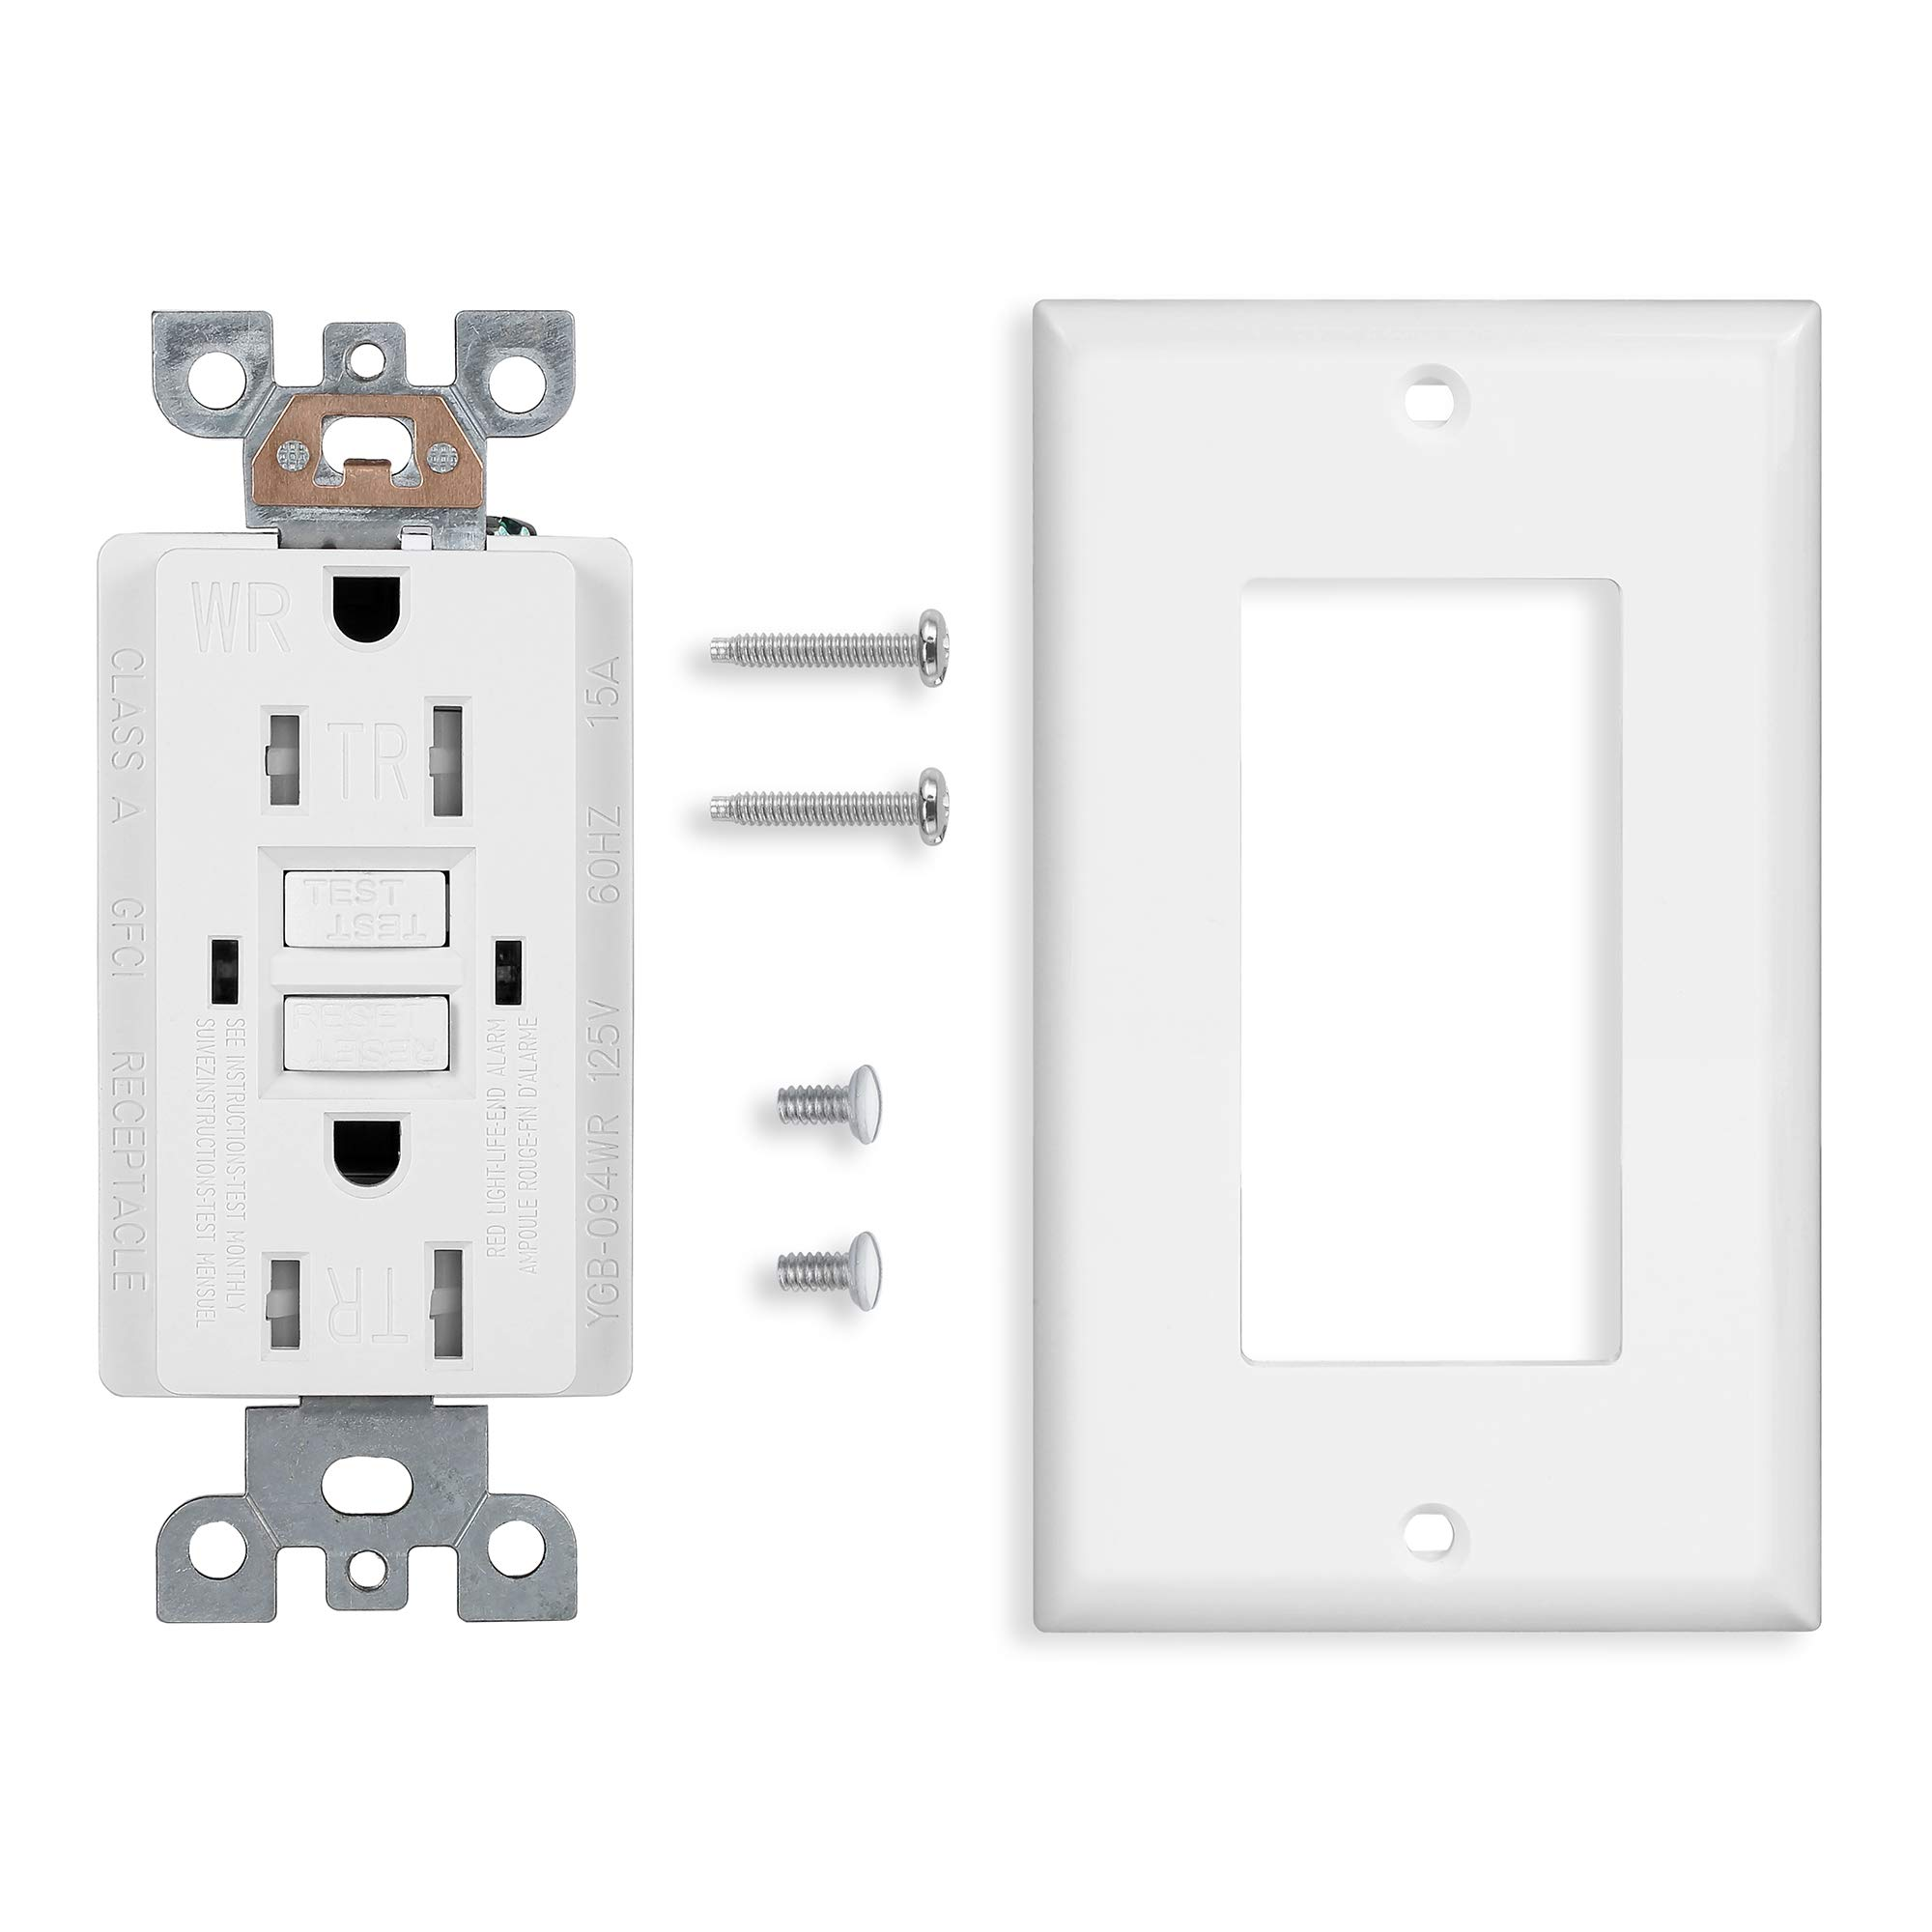 10 Pack - GFCI Duplex Outlet Receptacle - Tamper Resistant & Weather Resistant 15-Amp/125-Volt, Self-Test Function with LED Indicator - UL Listed, cUL Listed - Wall Plate and Screws Included, White by Dependable Direct (Image #8)